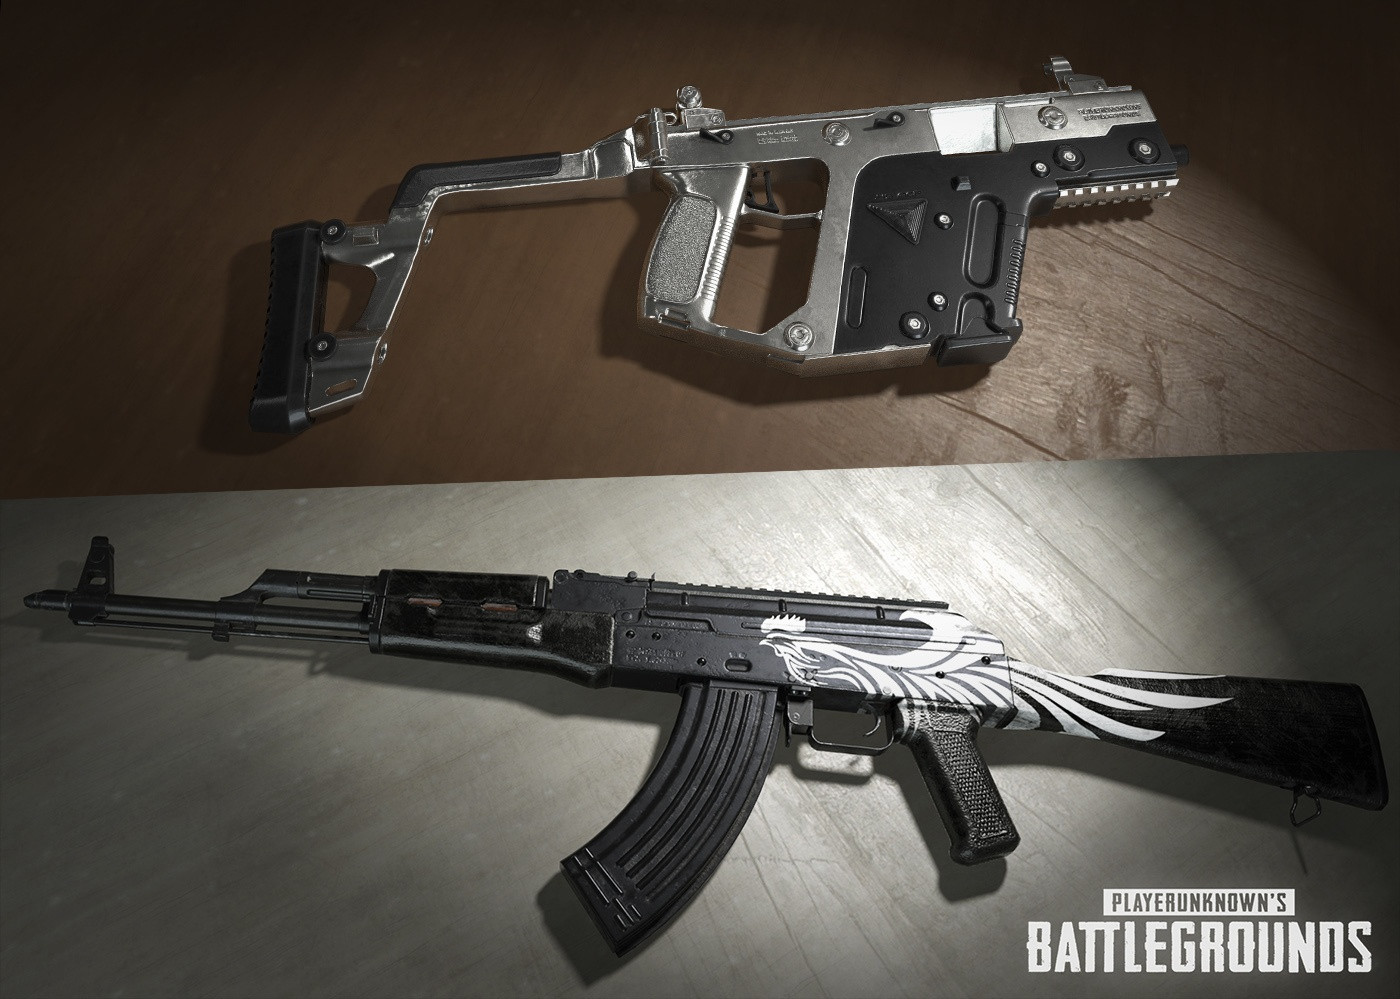 playerunknown's battlegrounds - pubg guns & weapons skins